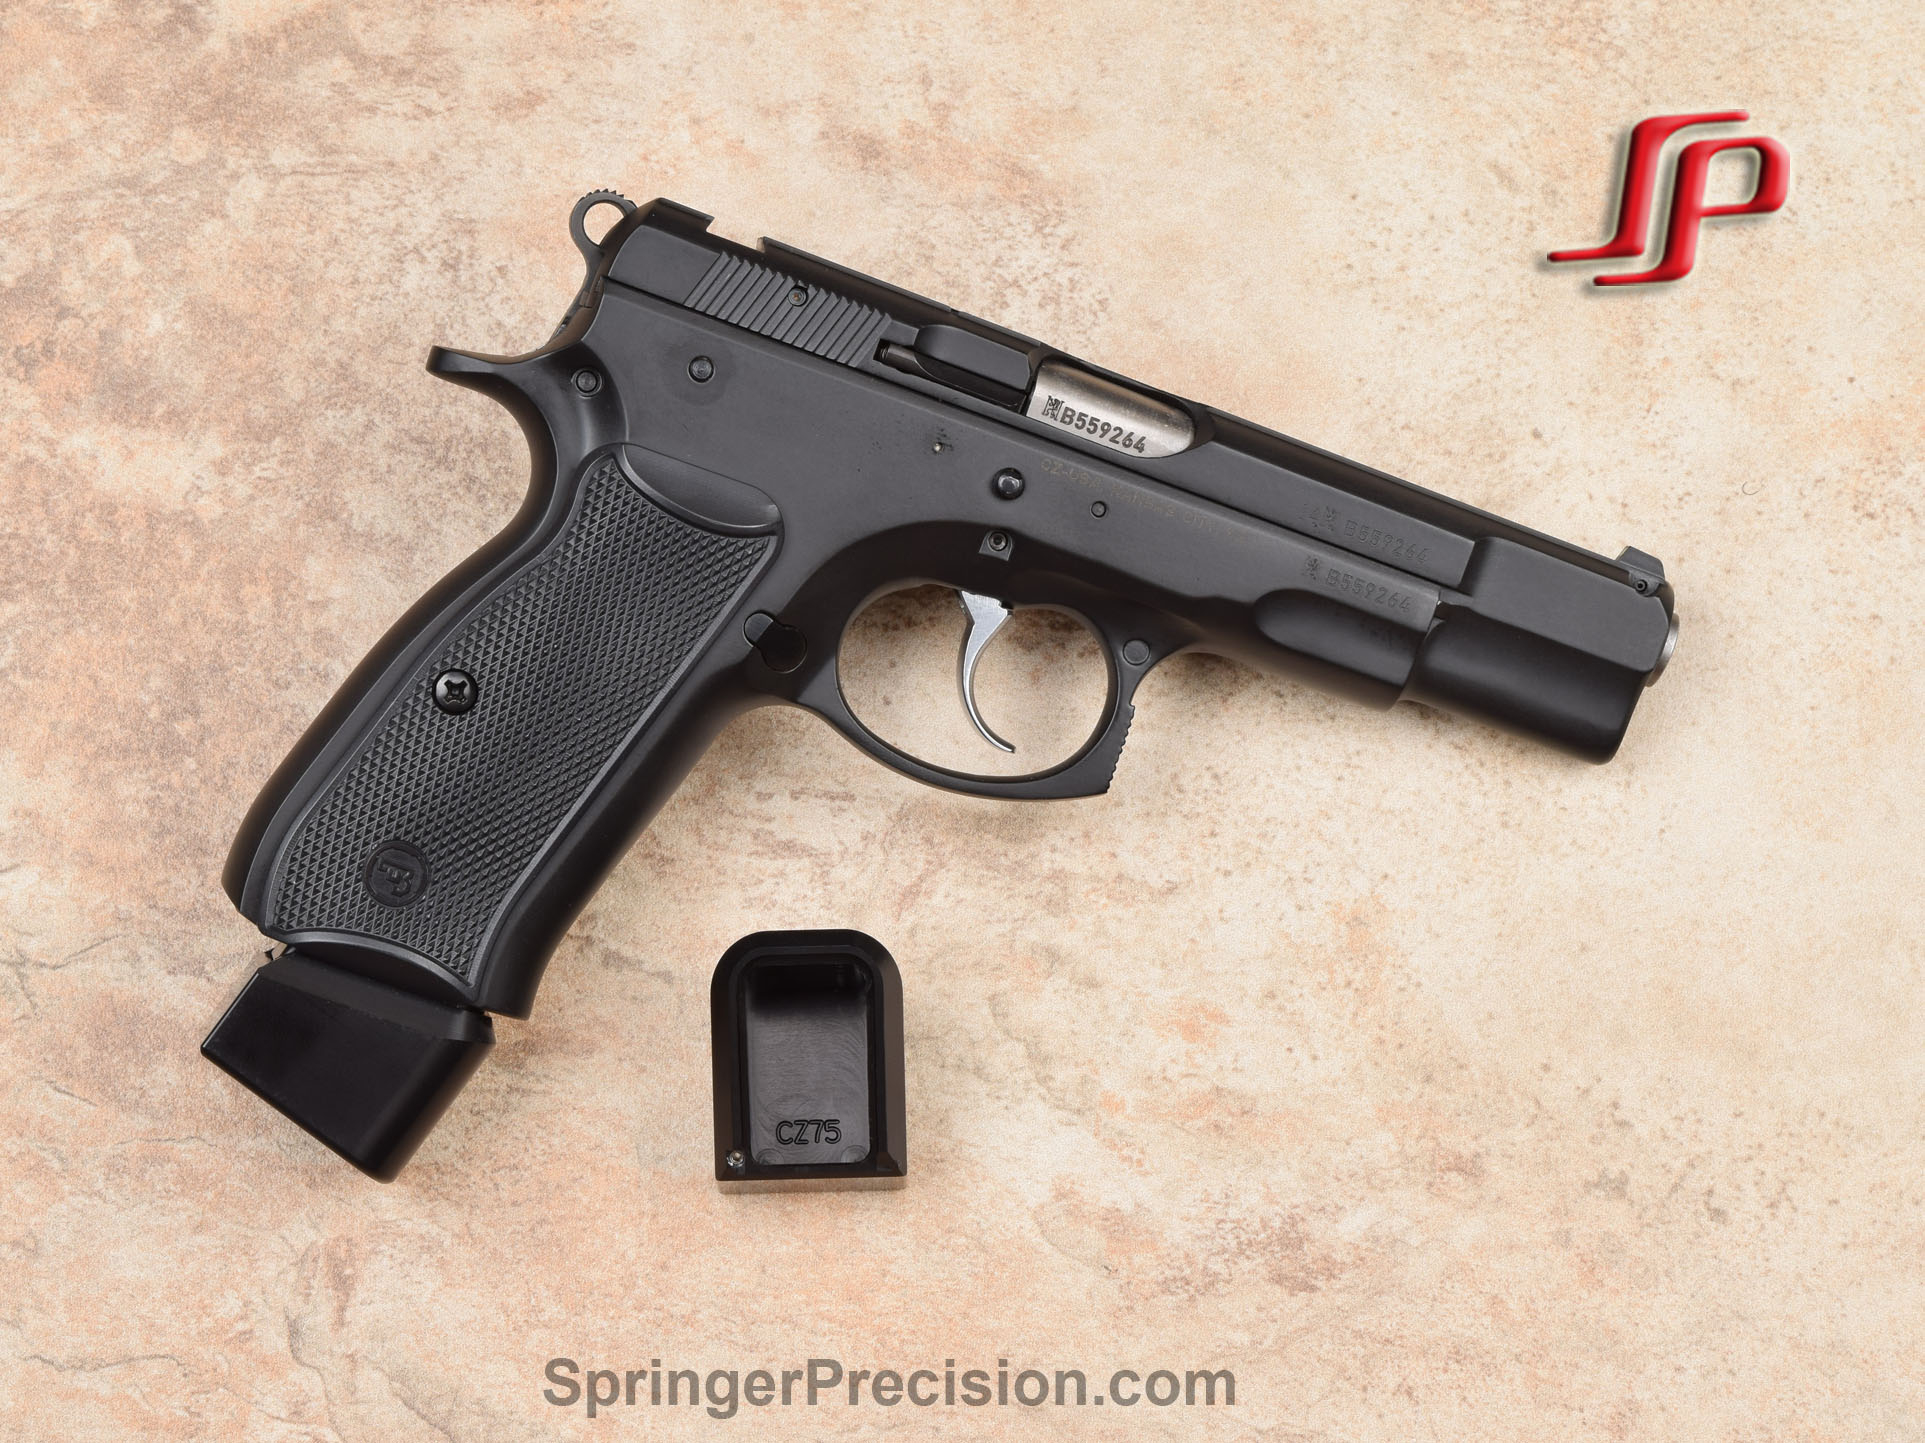 Springer Precision CZ75 EZ 140mm base pads - Mec-Gar 17 RD BLACK